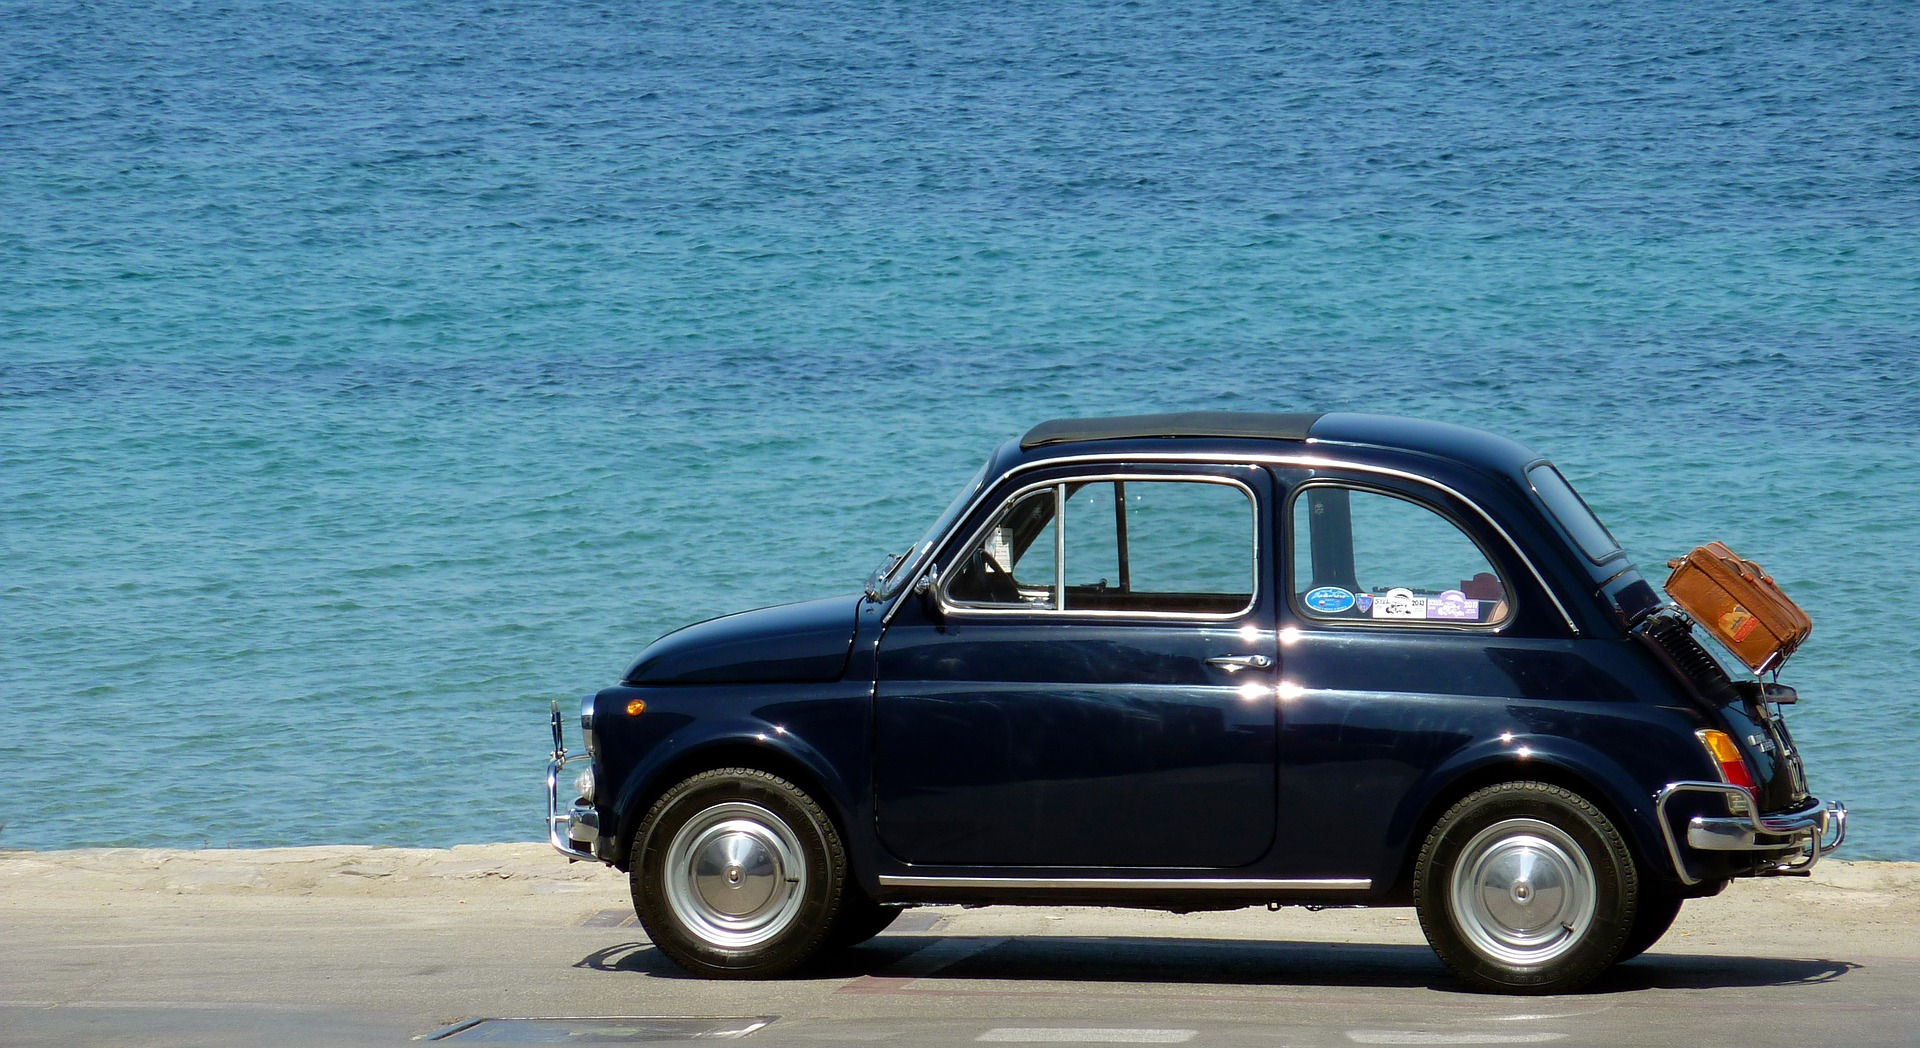 fiat car by sea